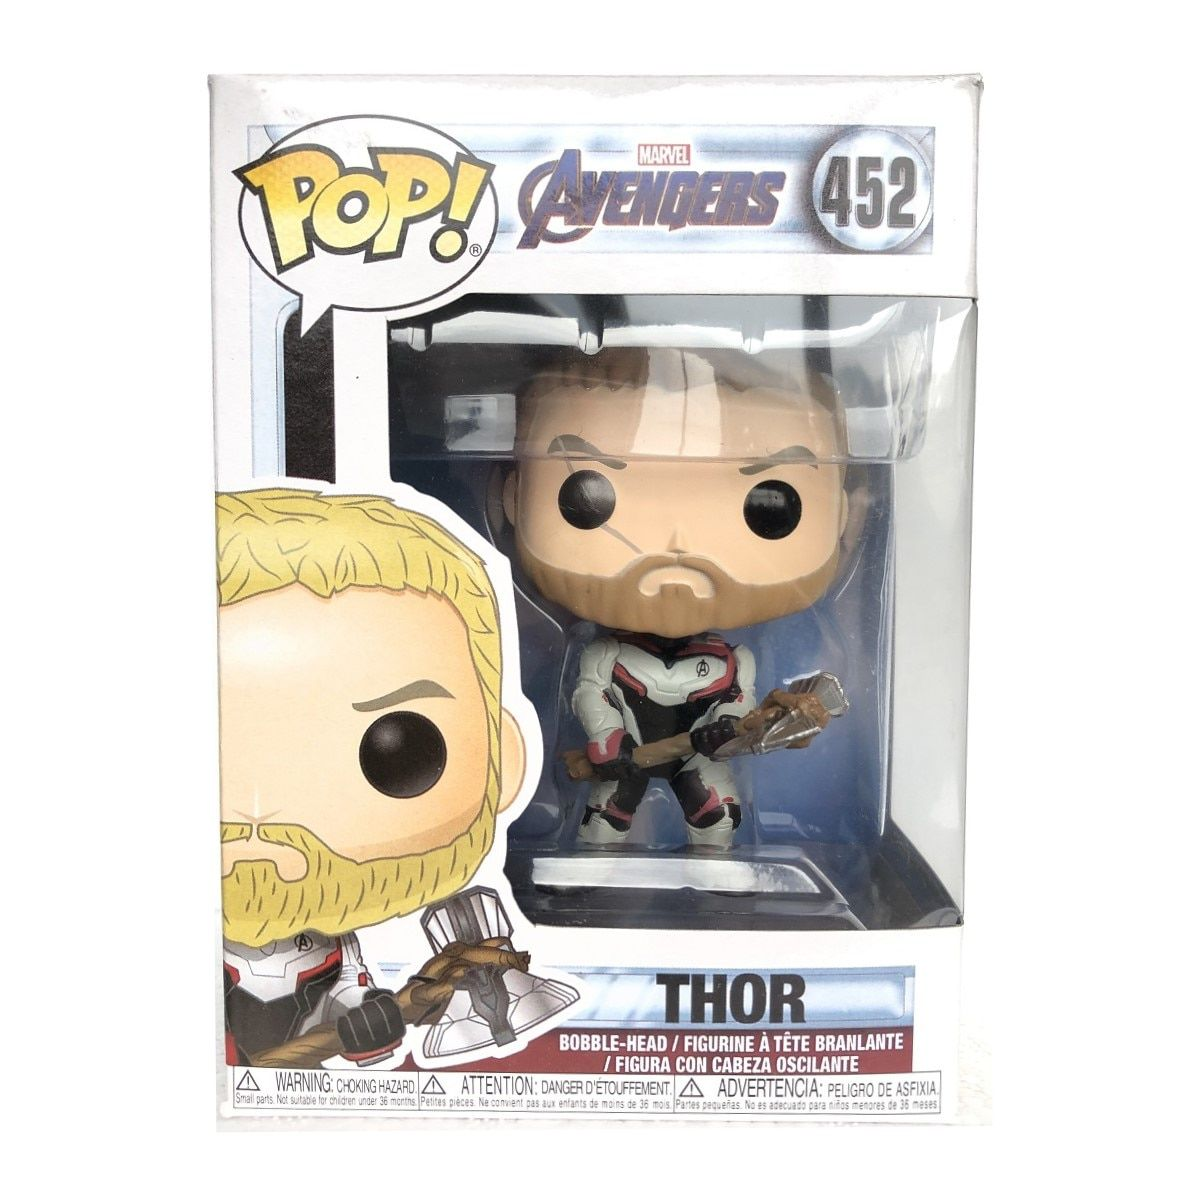 Funko Pop Marvel Avengers Endgame Thor 452  - Game Land Brinquedos